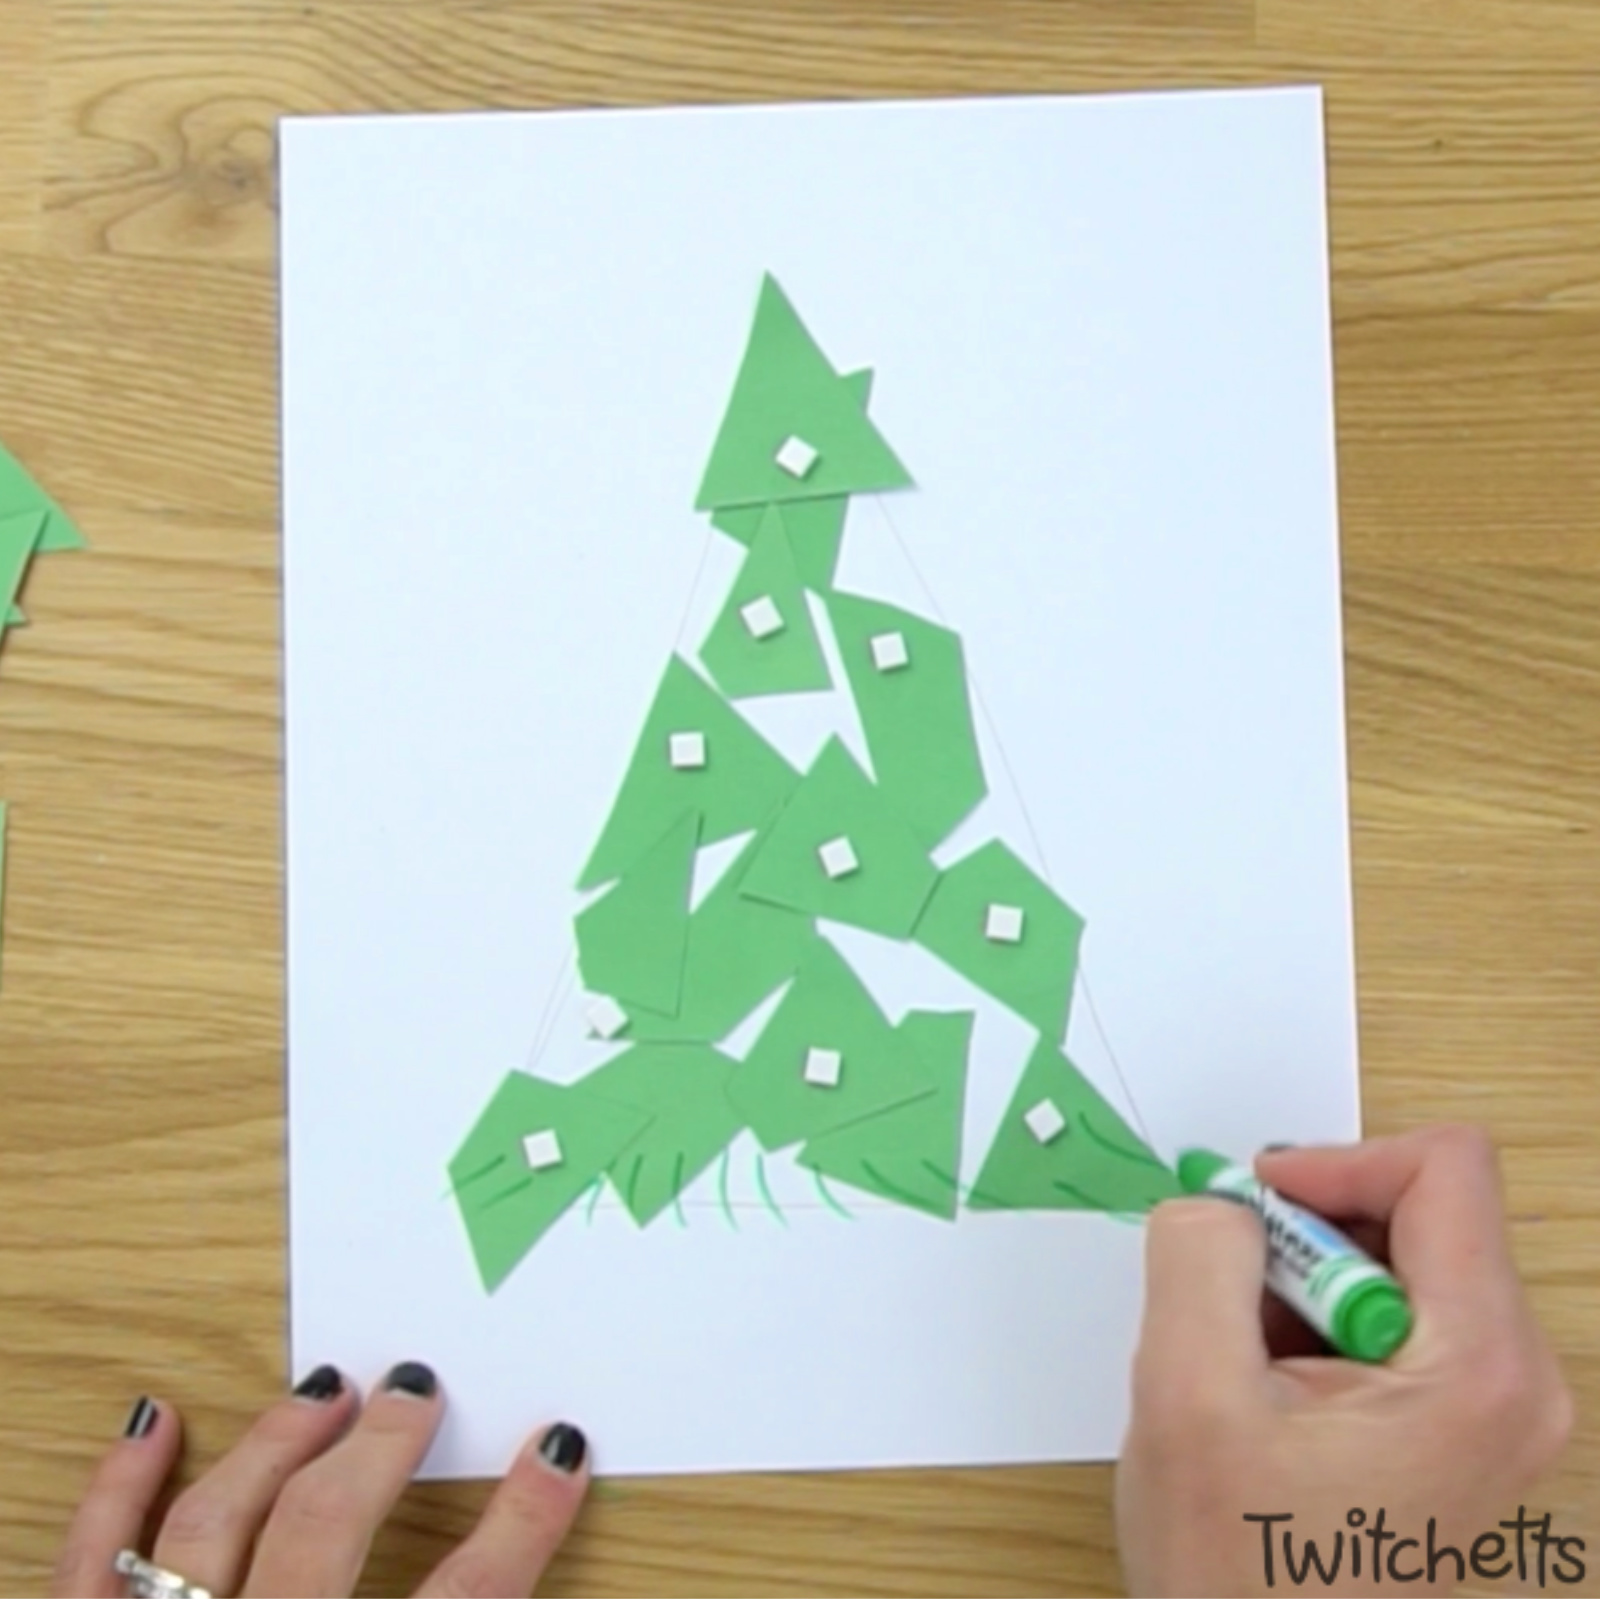 In process image of a 3D paper Christmas tree that uses spacers.